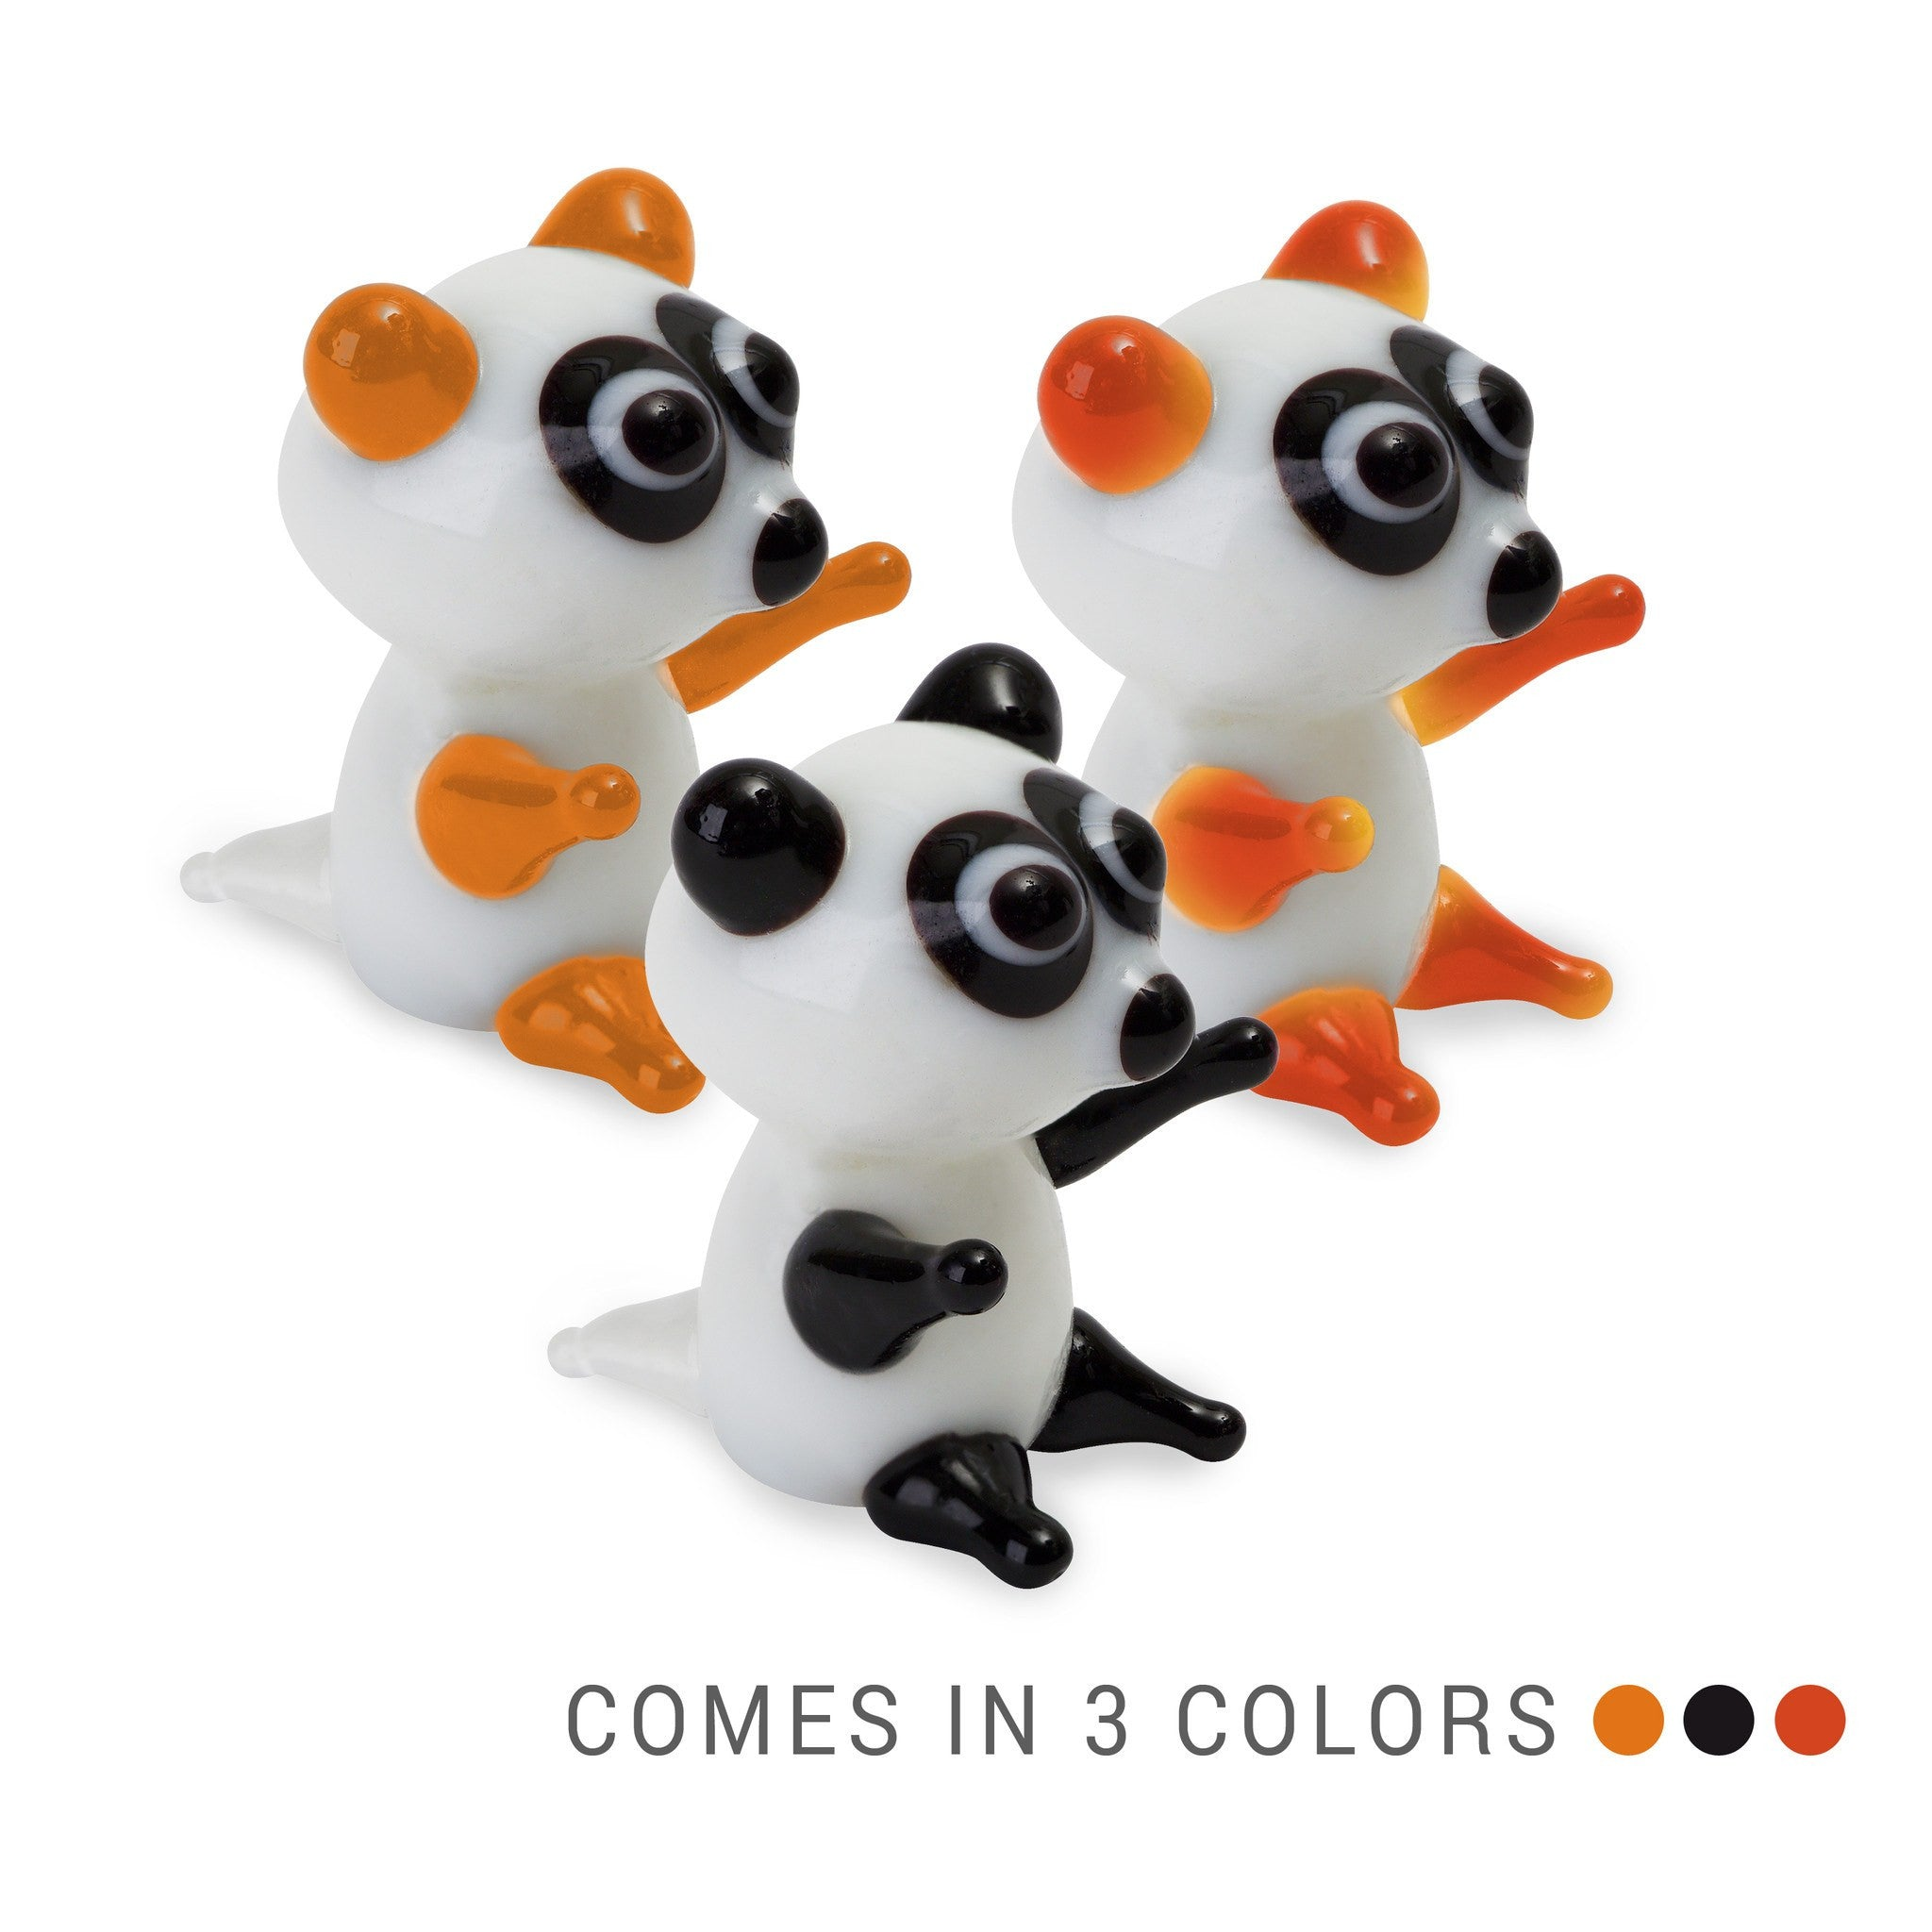 ONO the raccoon (in Tynies Collector's Frame) Miniature glass figurines